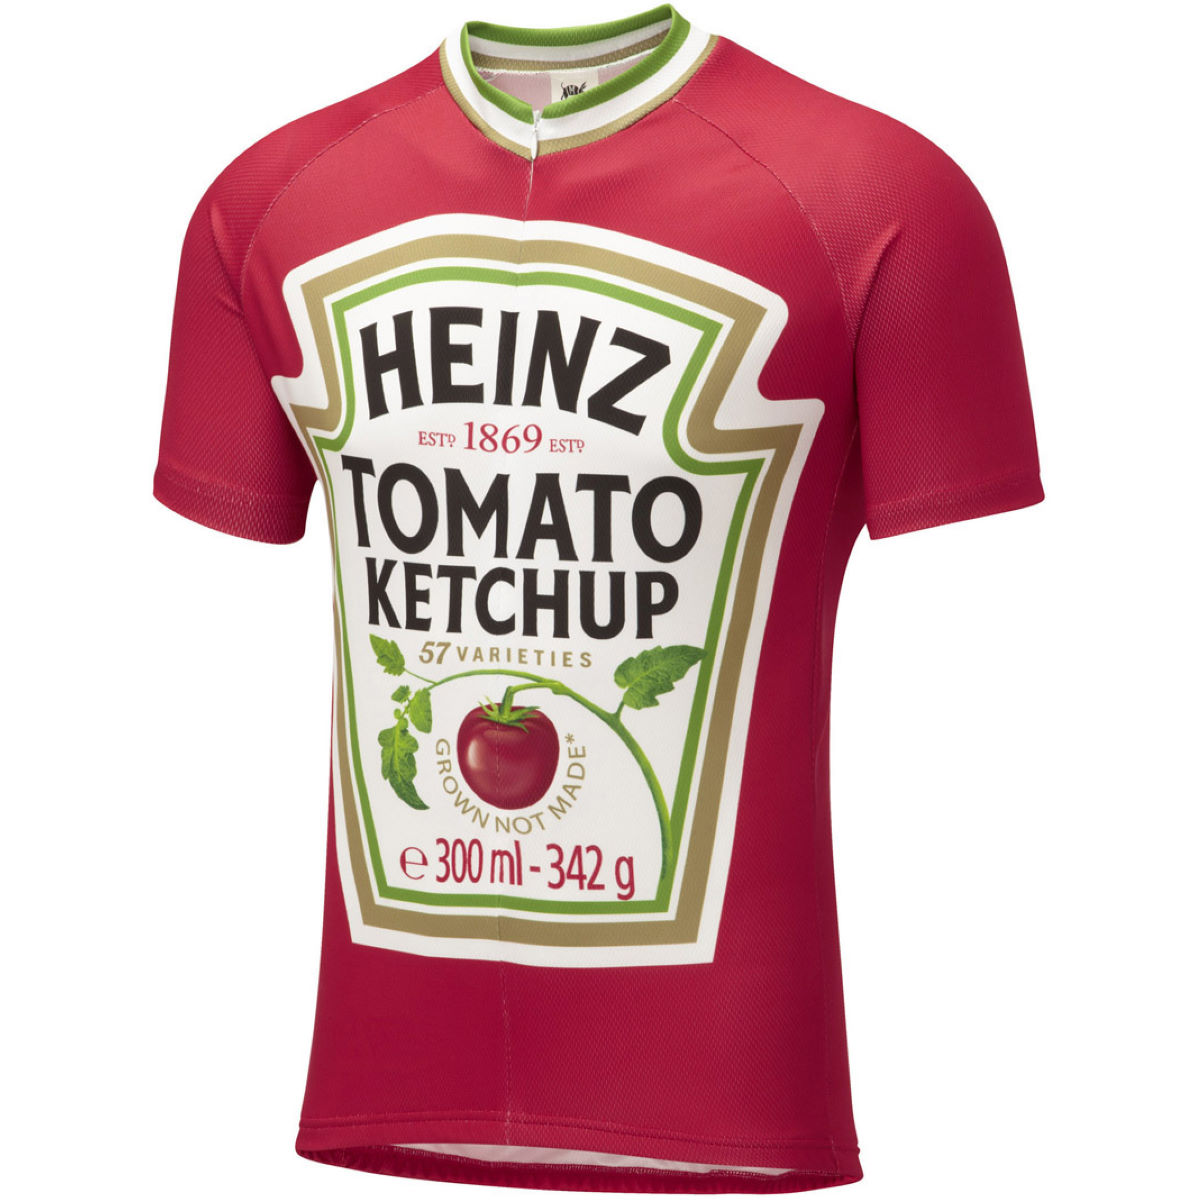 Image of Maillot Enfant Foska Ketchup - 6-8 Years Rouge | Maillots